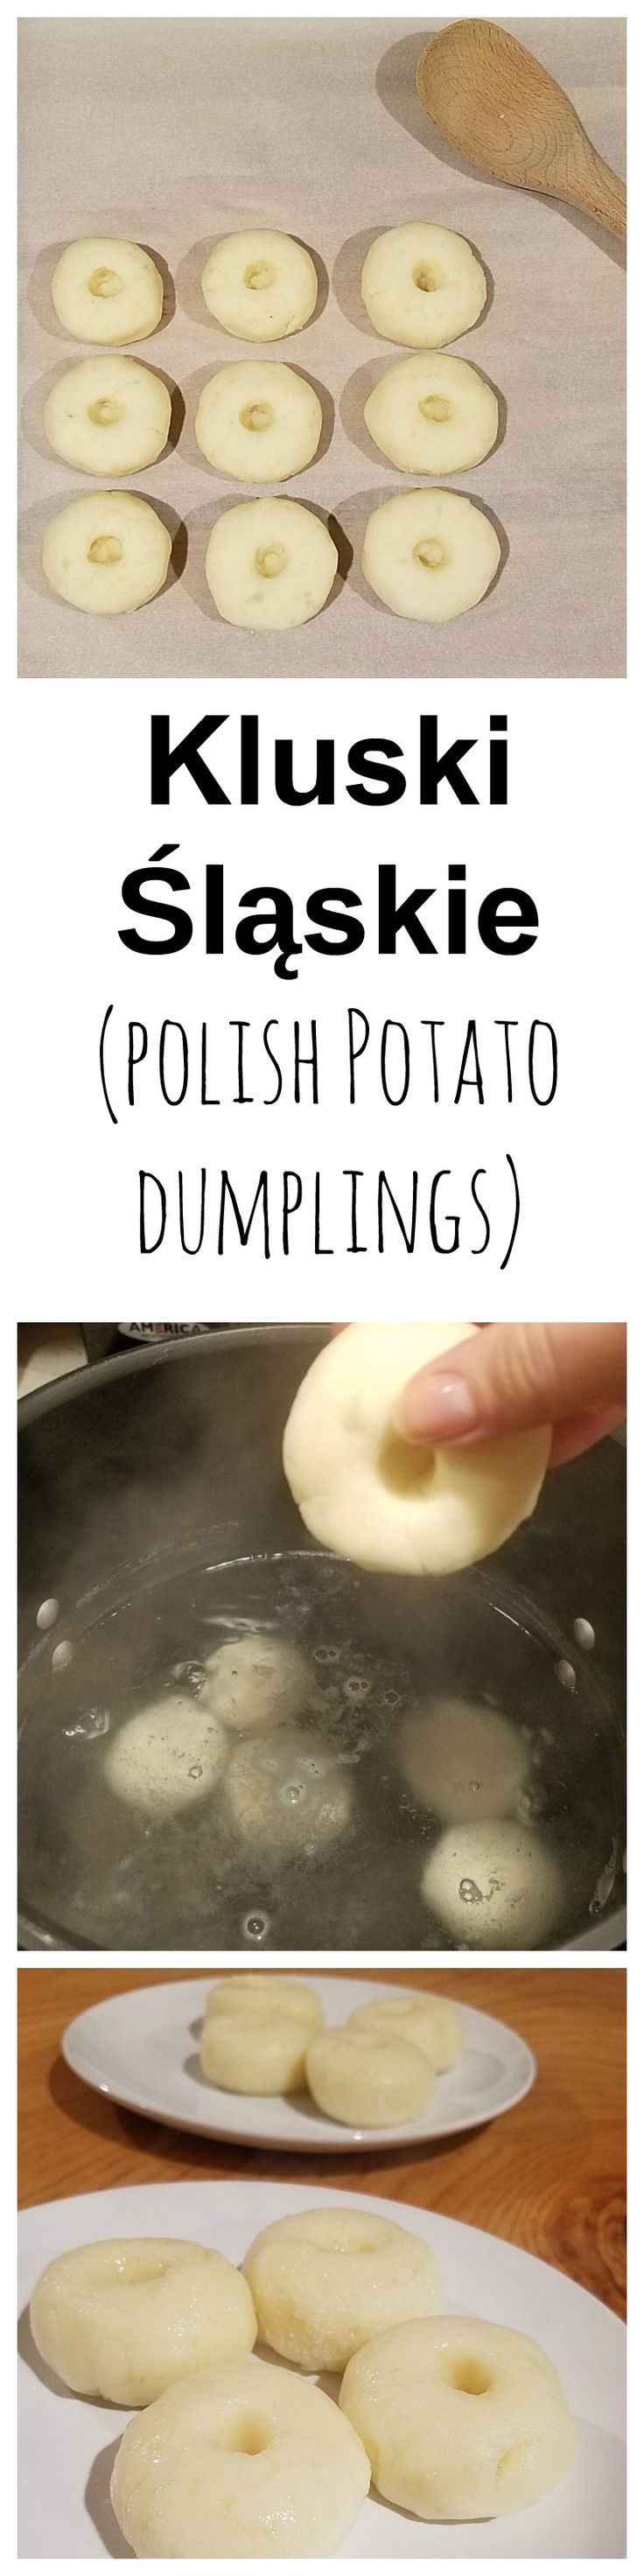 Kluski śląskie are potato dumplings with a little depression in the middle, similar in texture and flavor to Italian gnocchi. They originate from Poland.